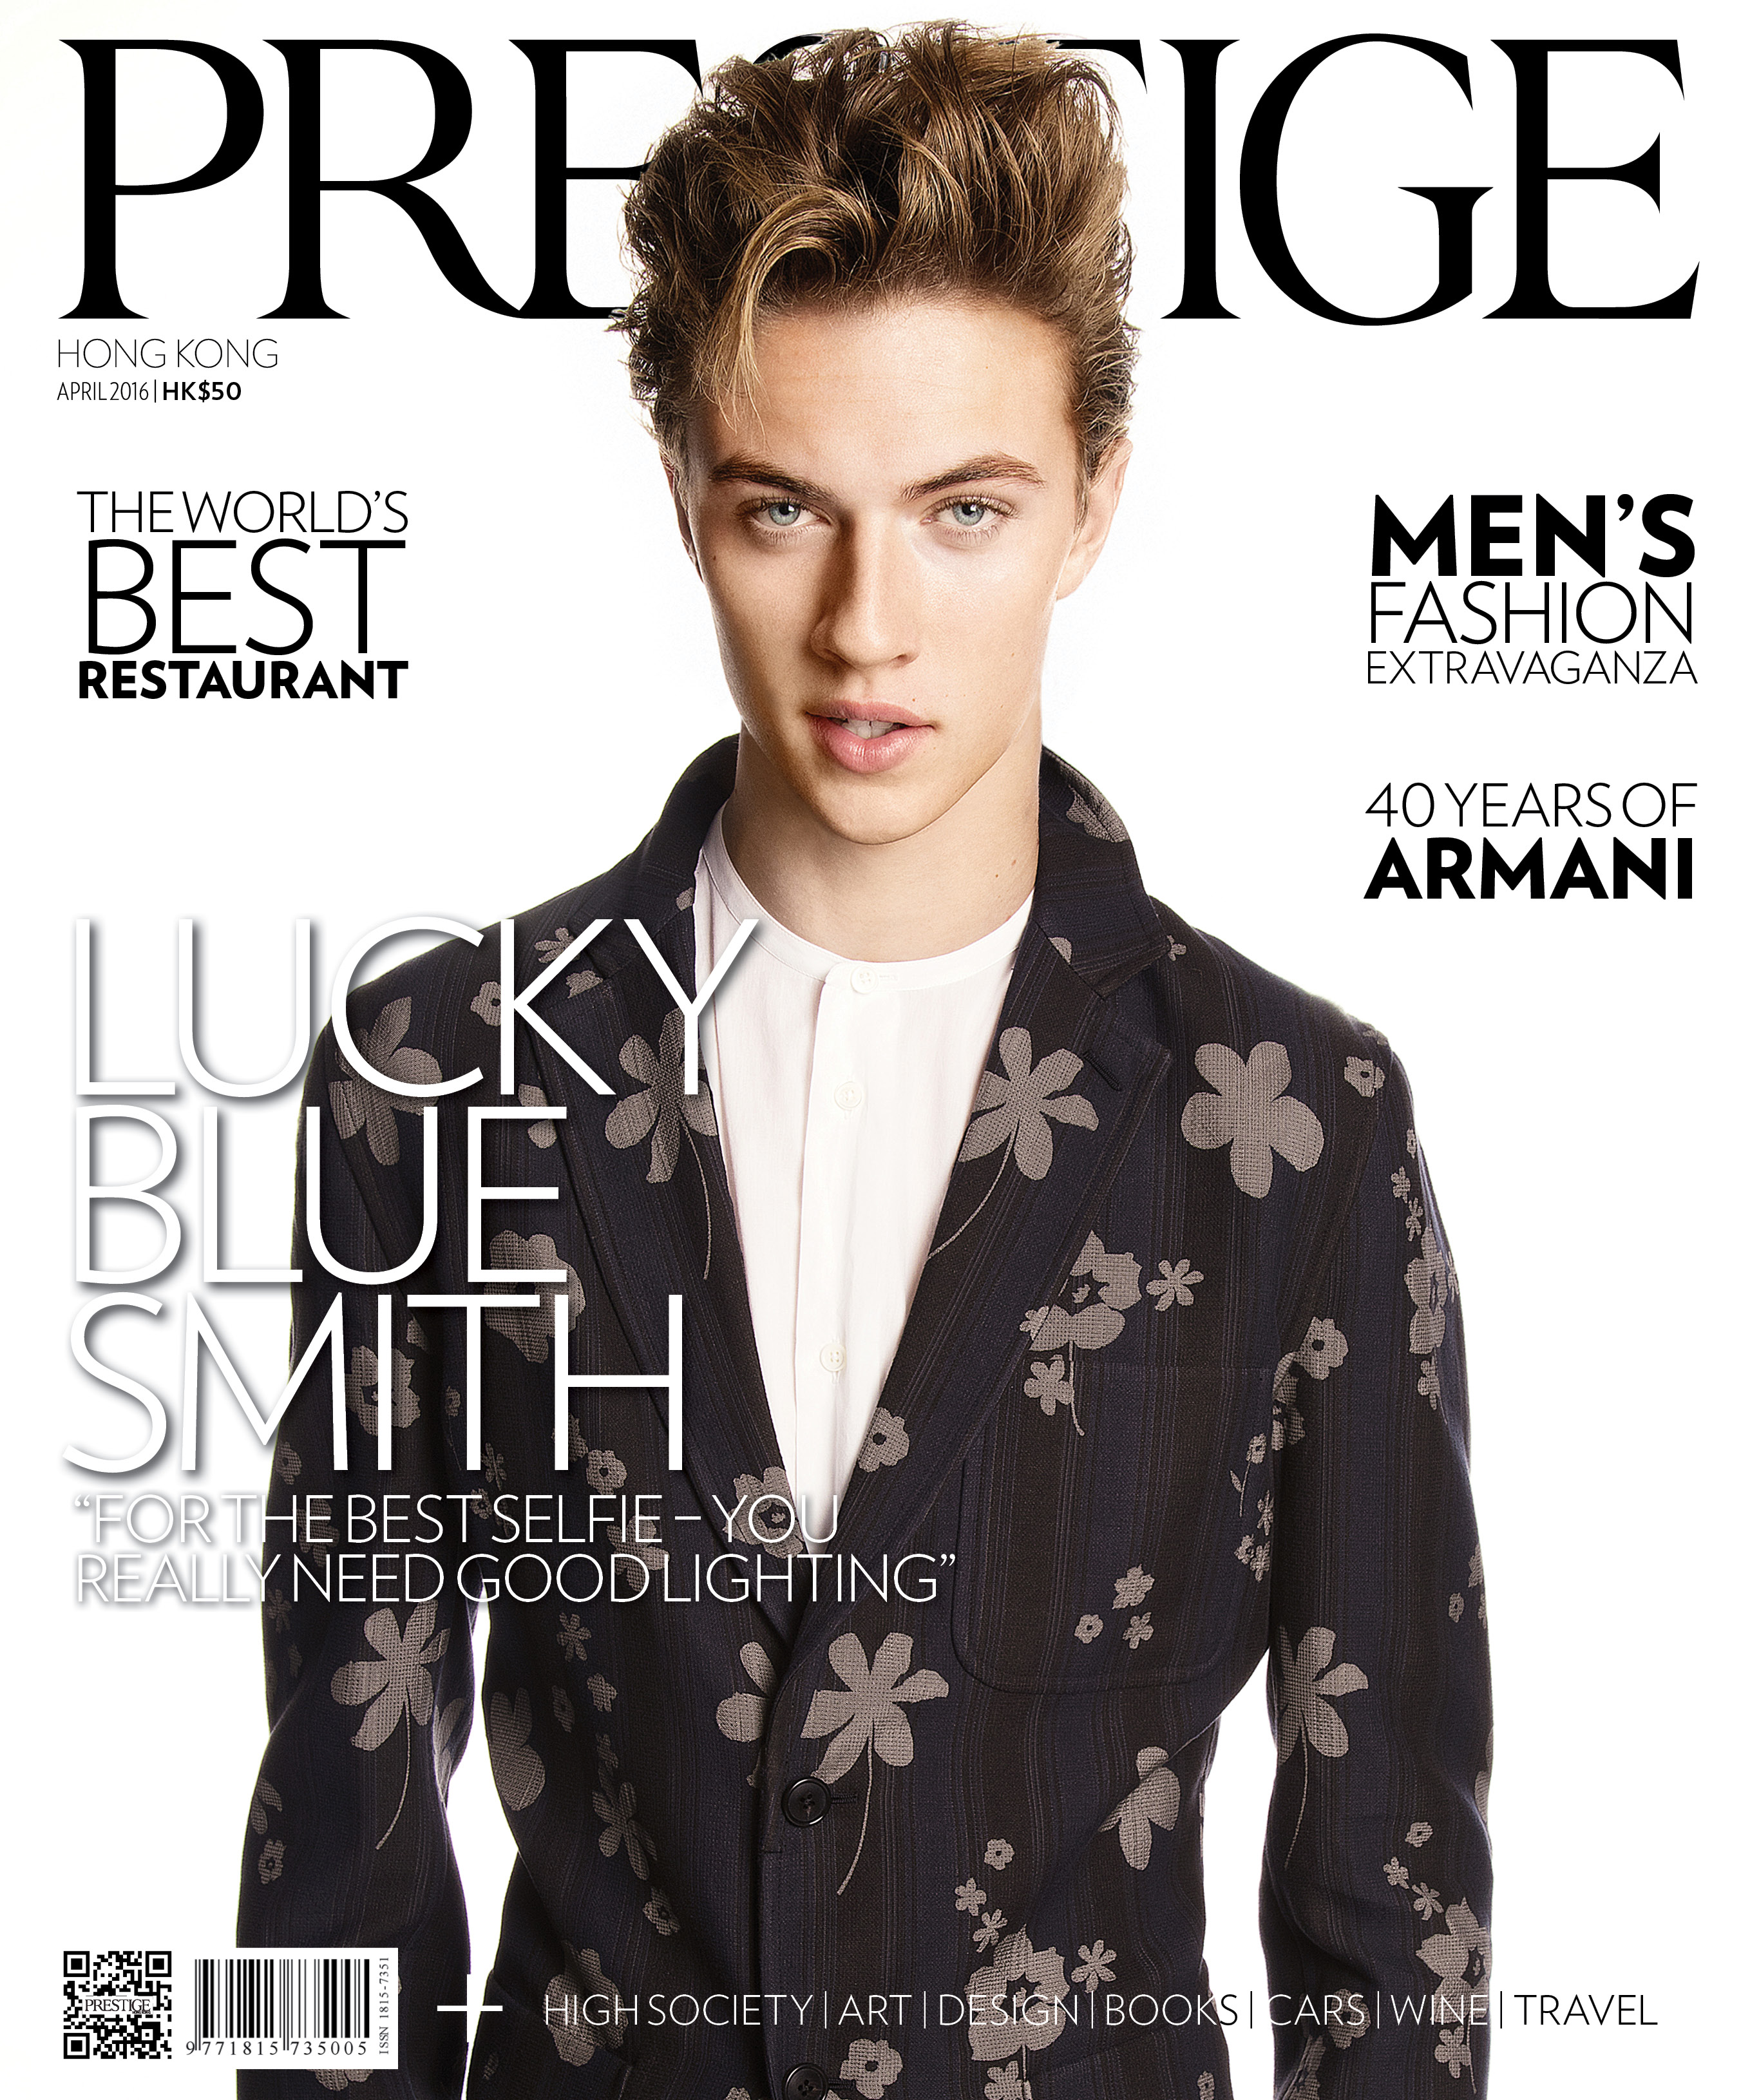 Lucky Blue Smith on our April 2016 cover